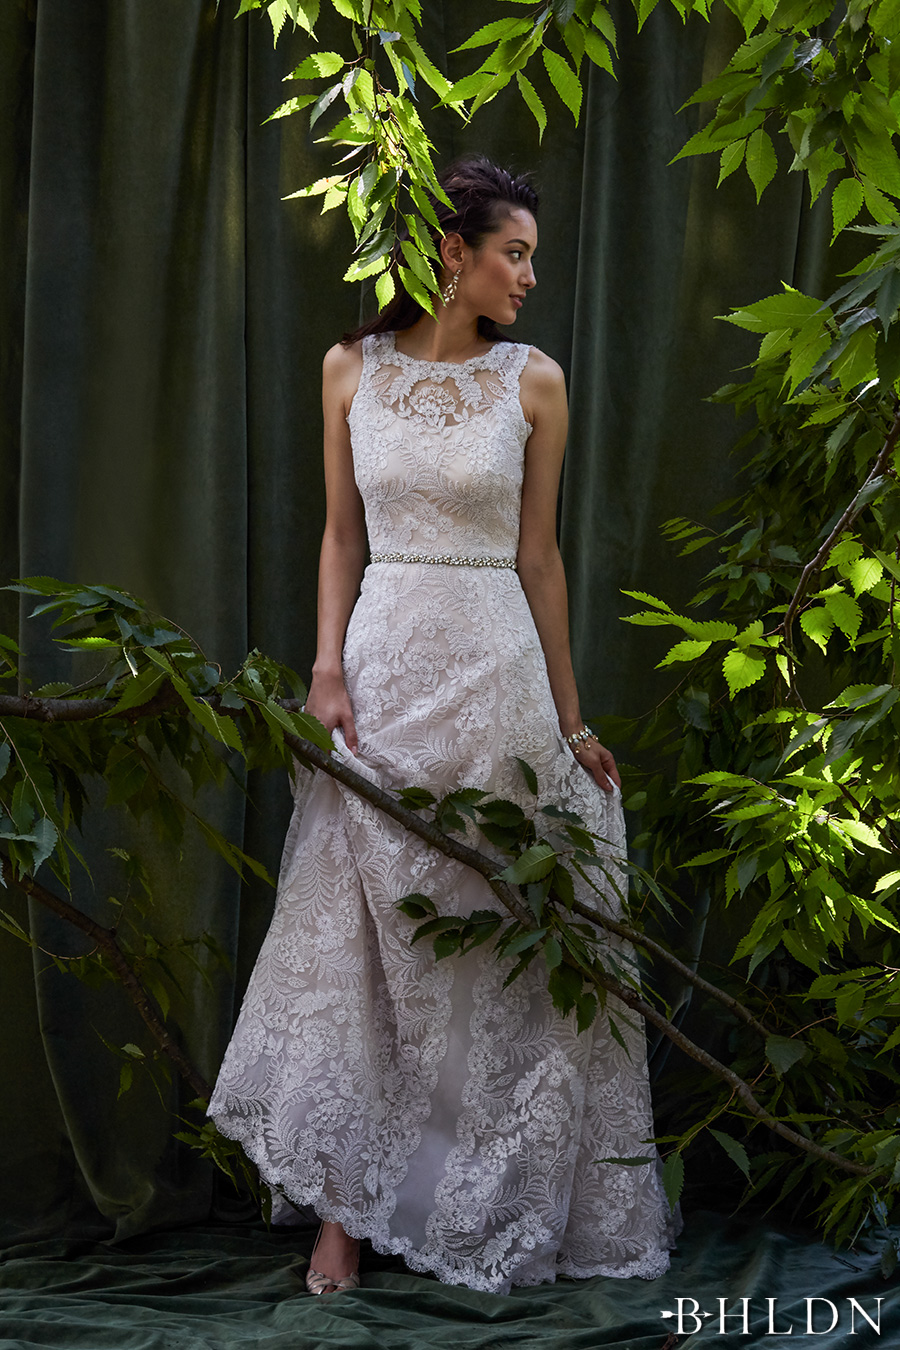 Behind the curtain bhldn s chic fall bridal collection for Fall lace wedding dresses